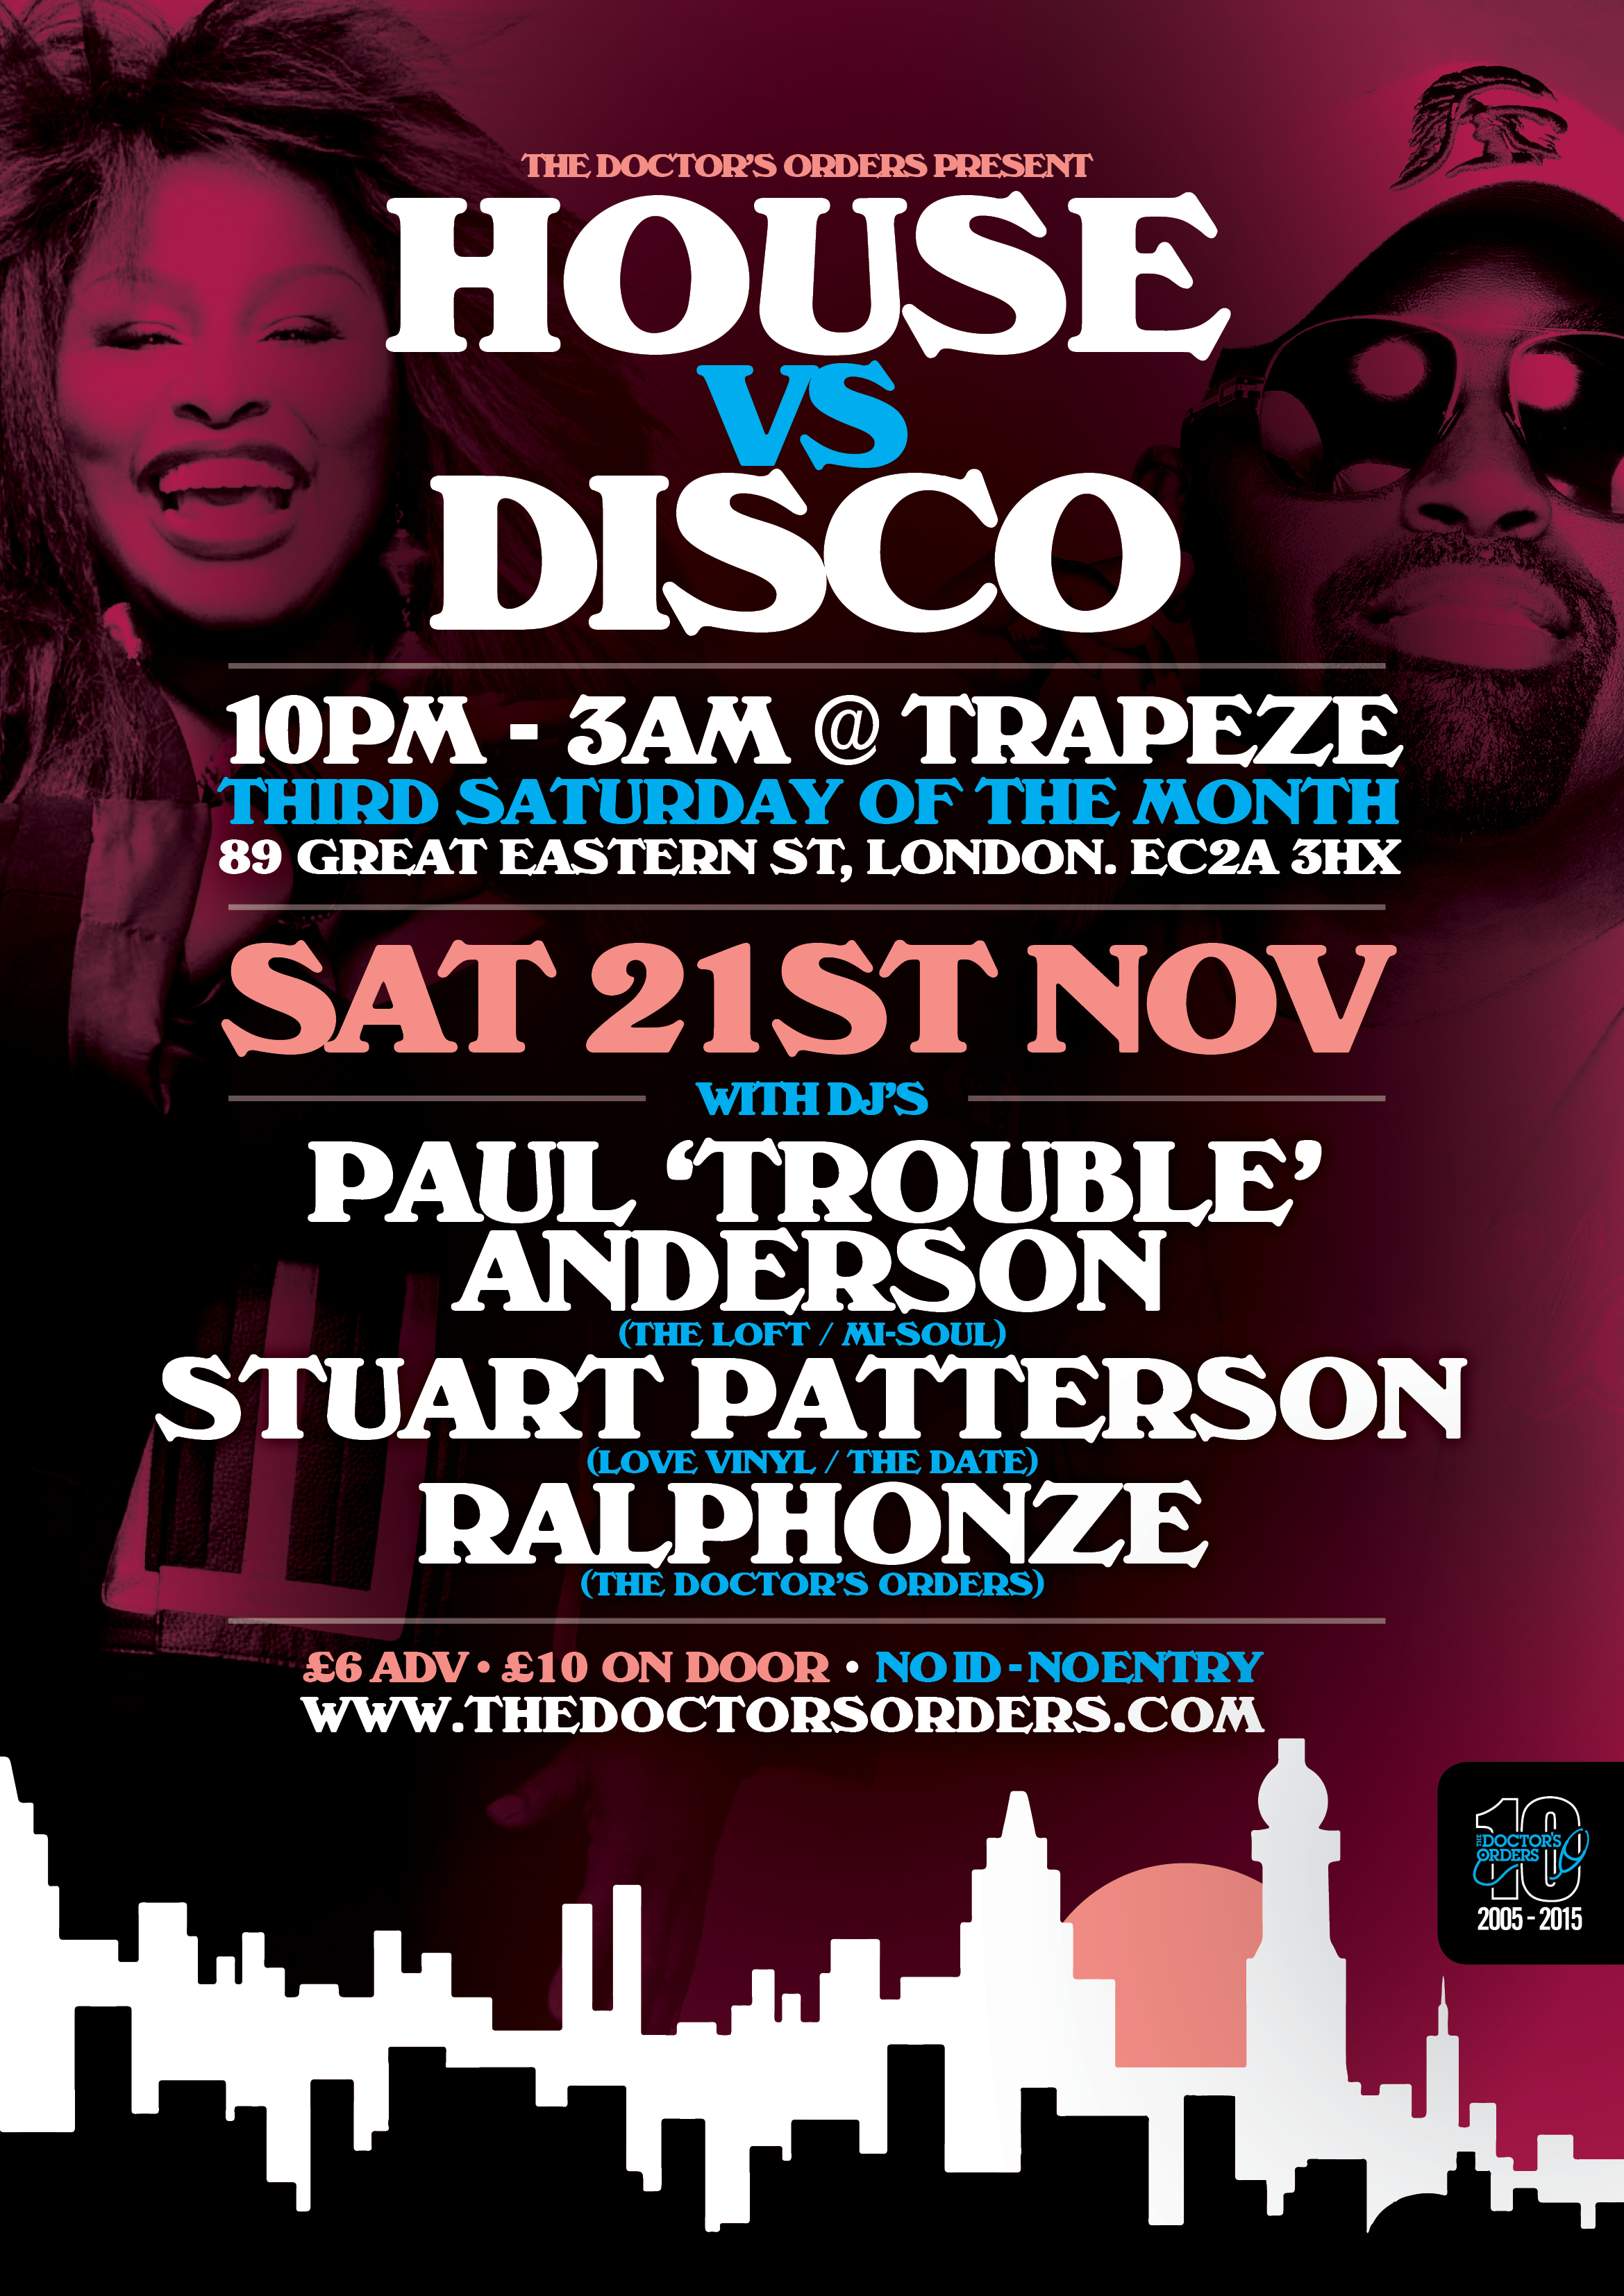 HouseVsDisco_Online_Nov15